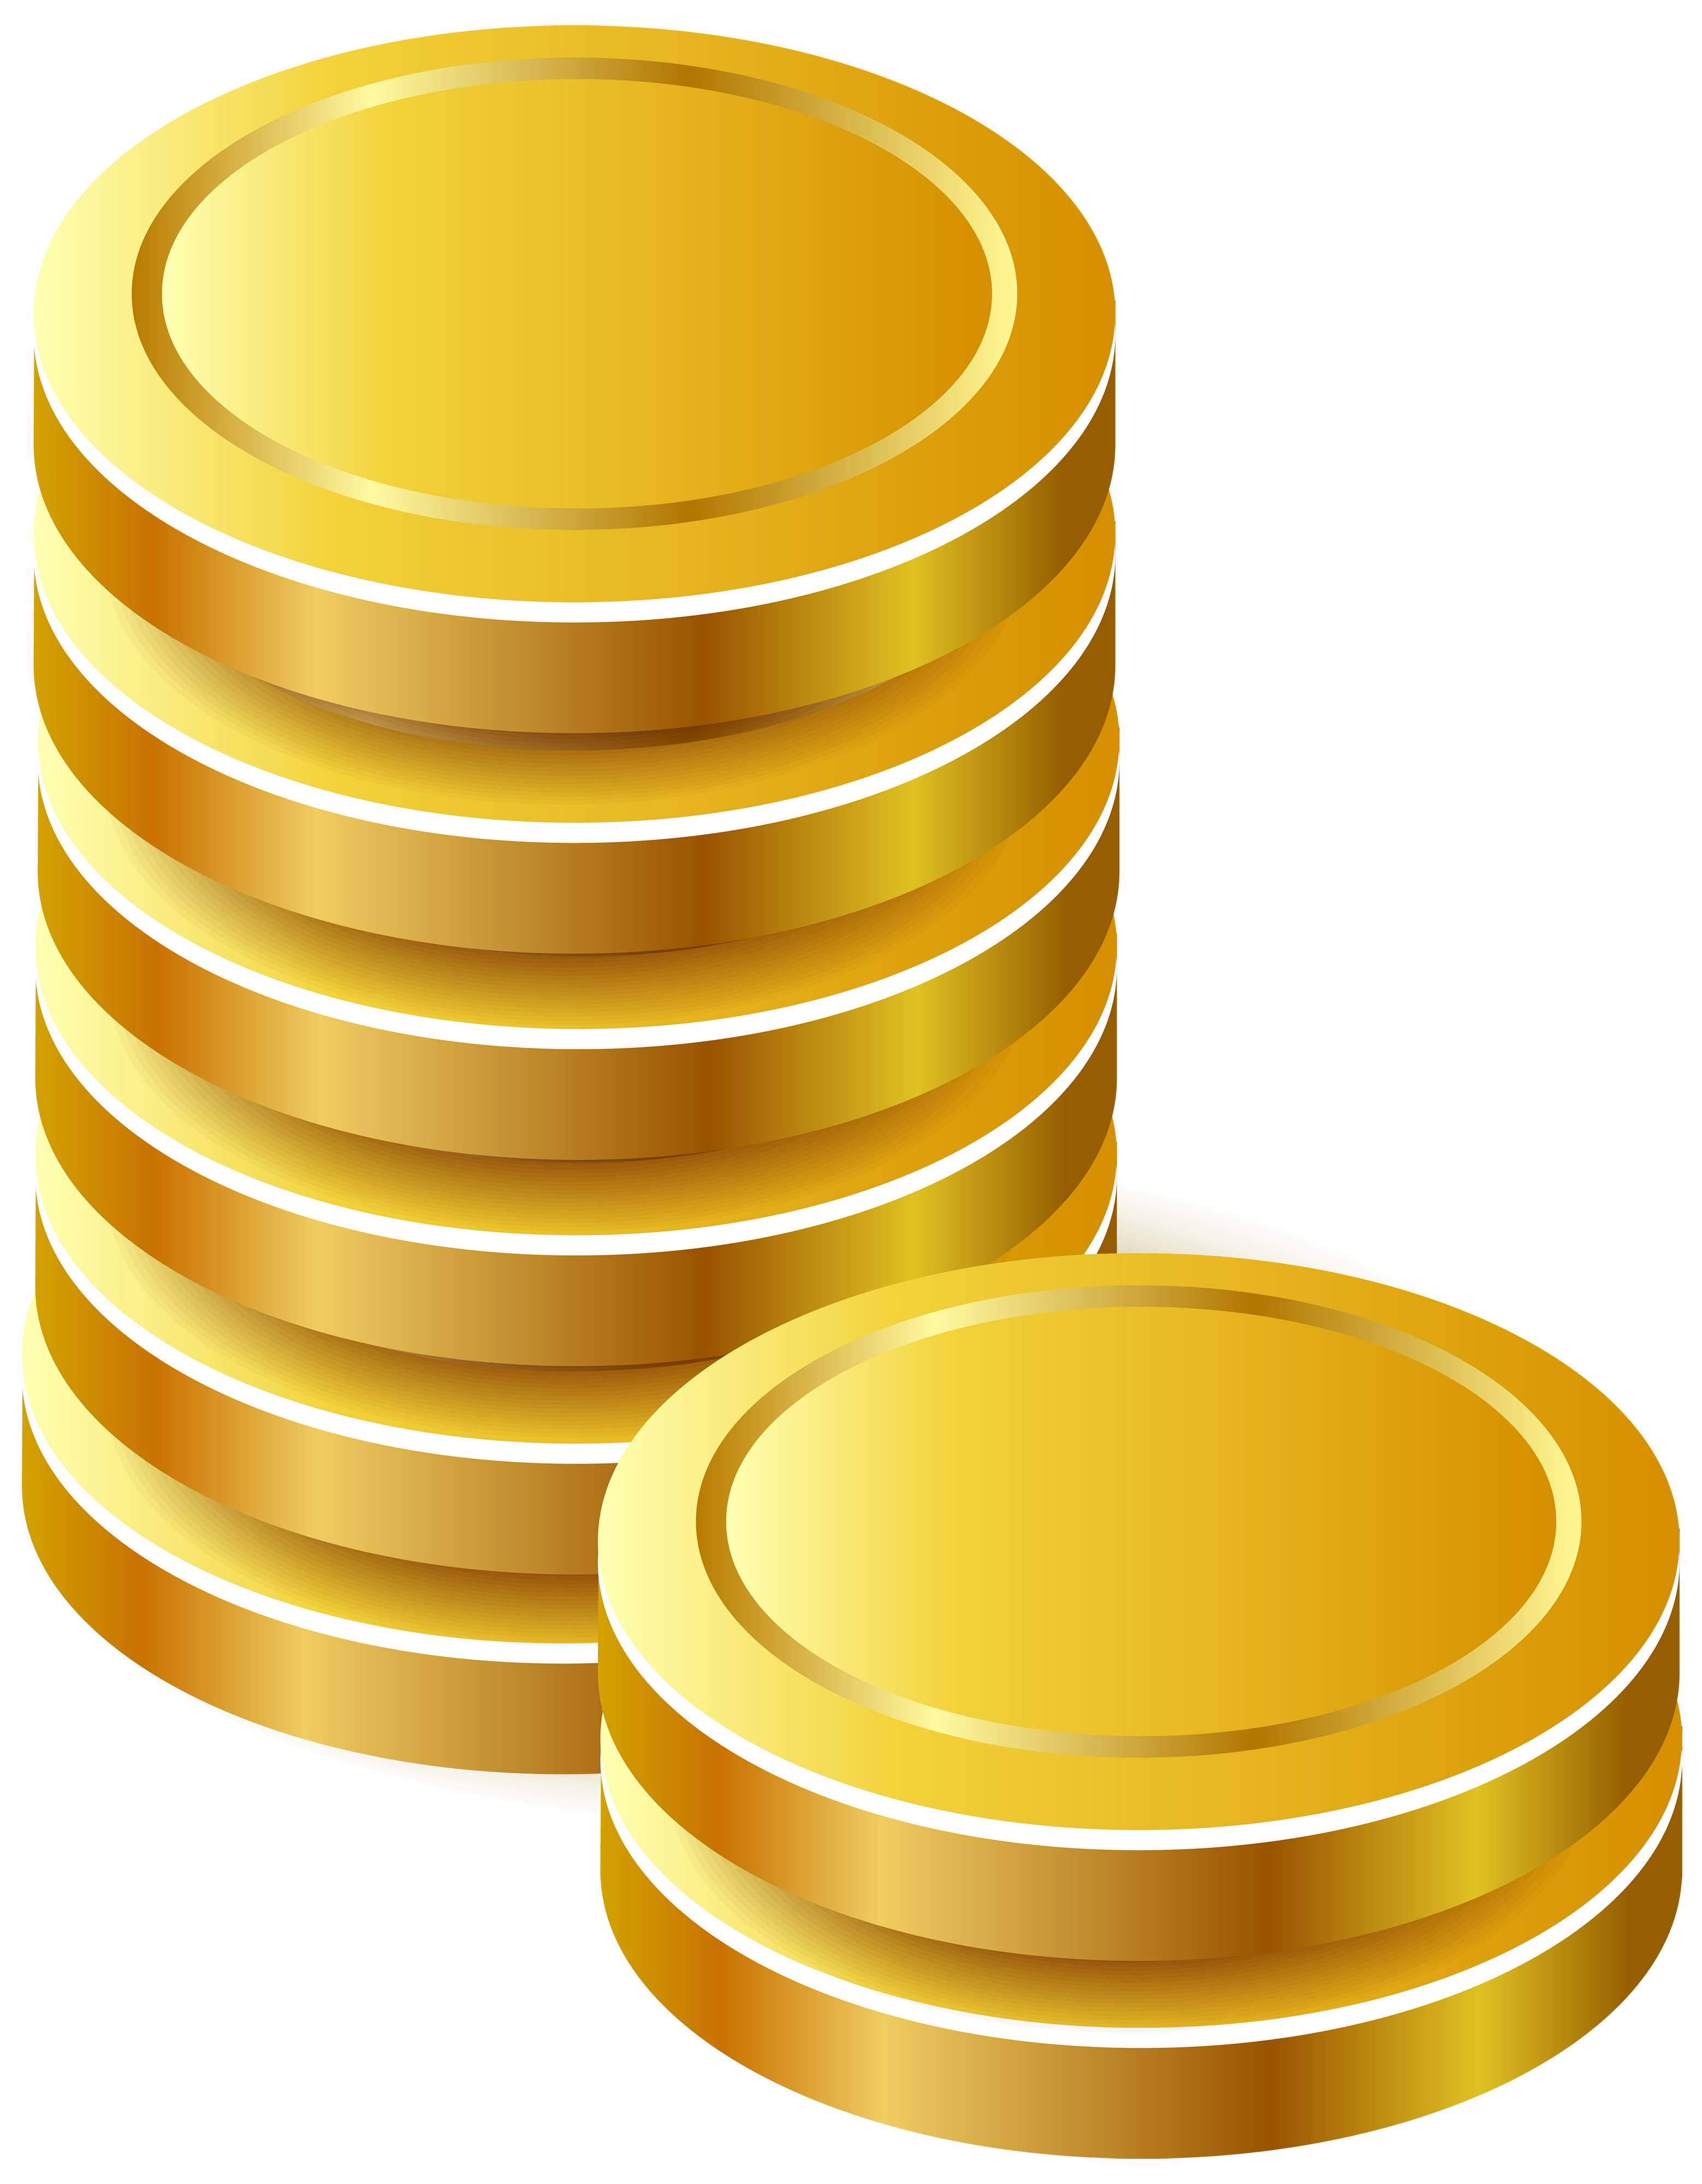 Coining money clipart image freeuse Gold Coins PNG Clipart - Best WEB Clipart image freeuse